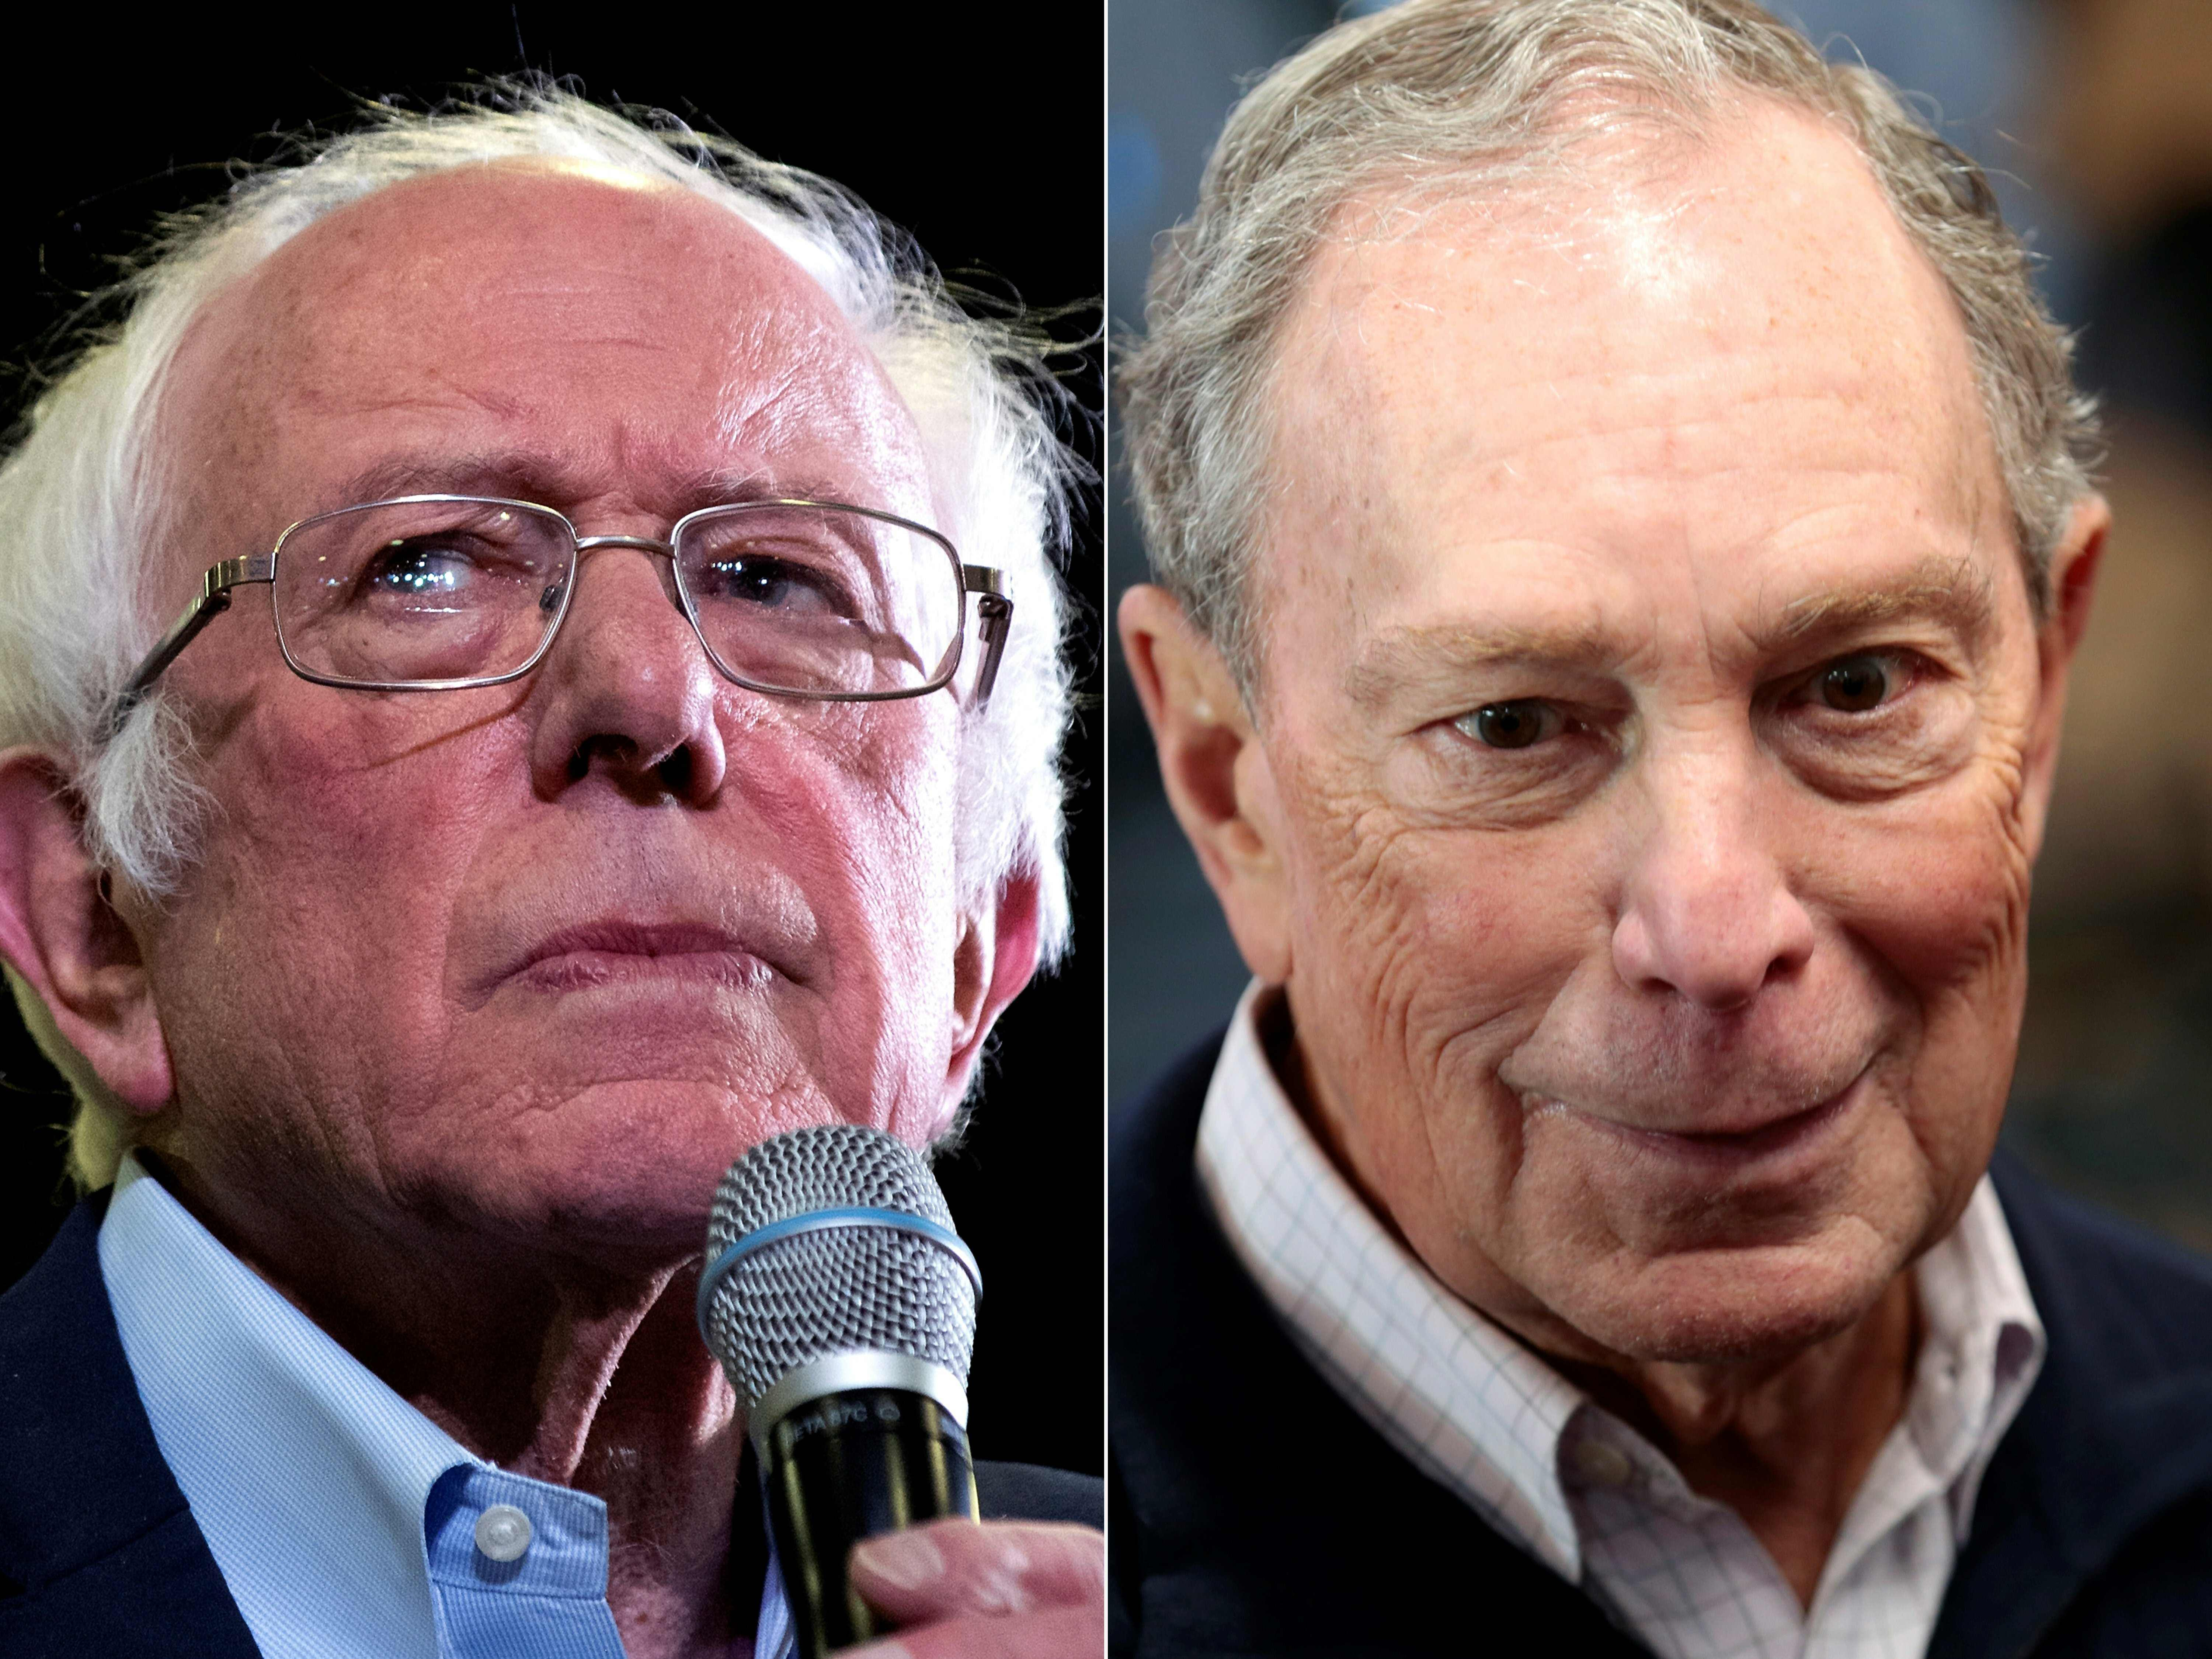 After releasing additional medical records, Bloomberg calls on Sanders to do the same